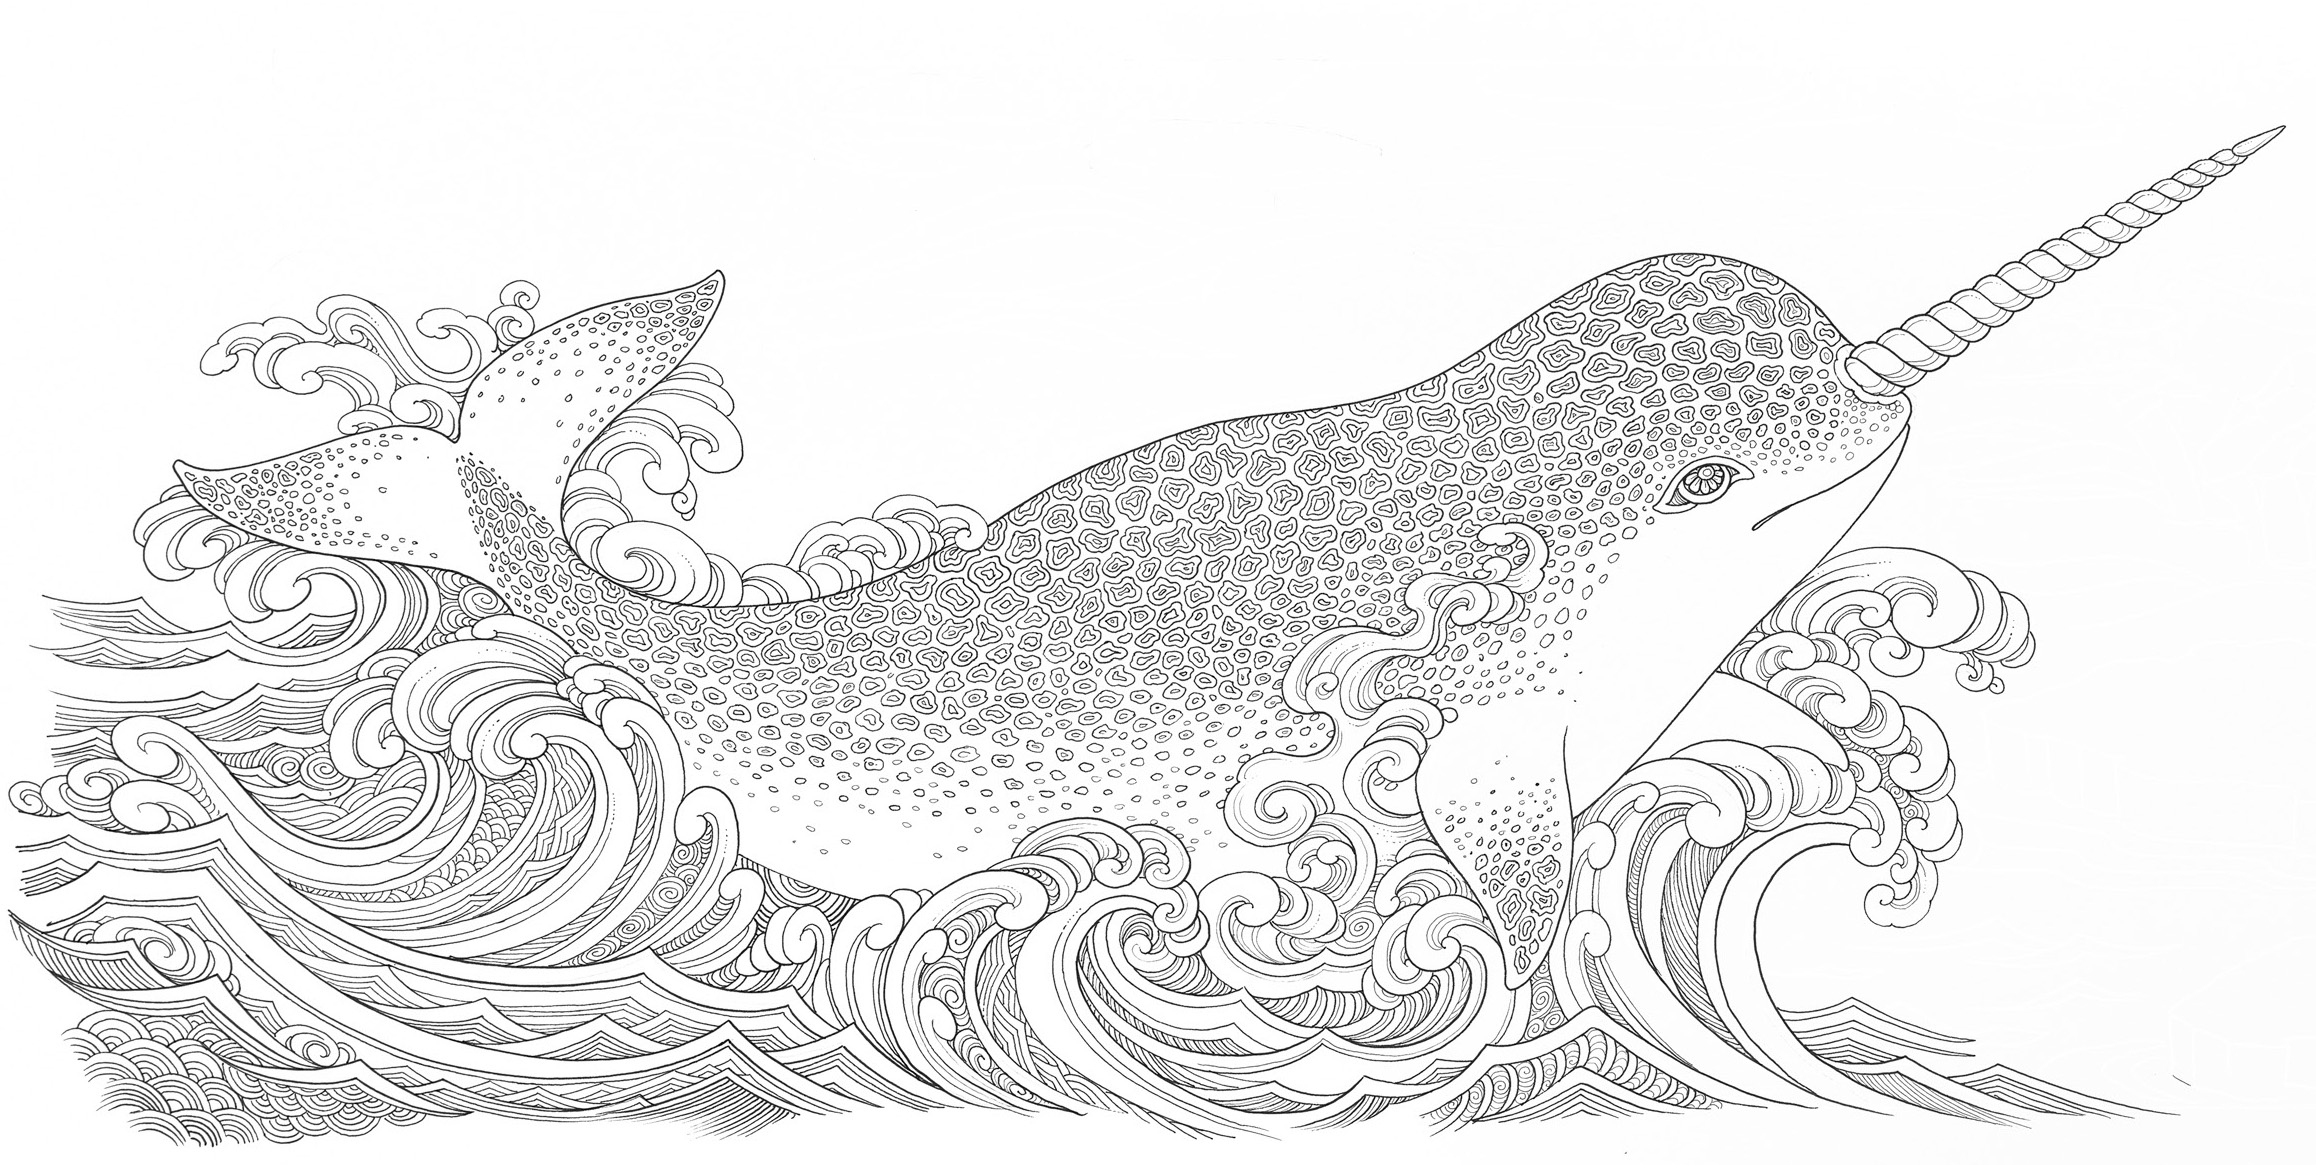 narwhal coloring page - narwhal coloring pages